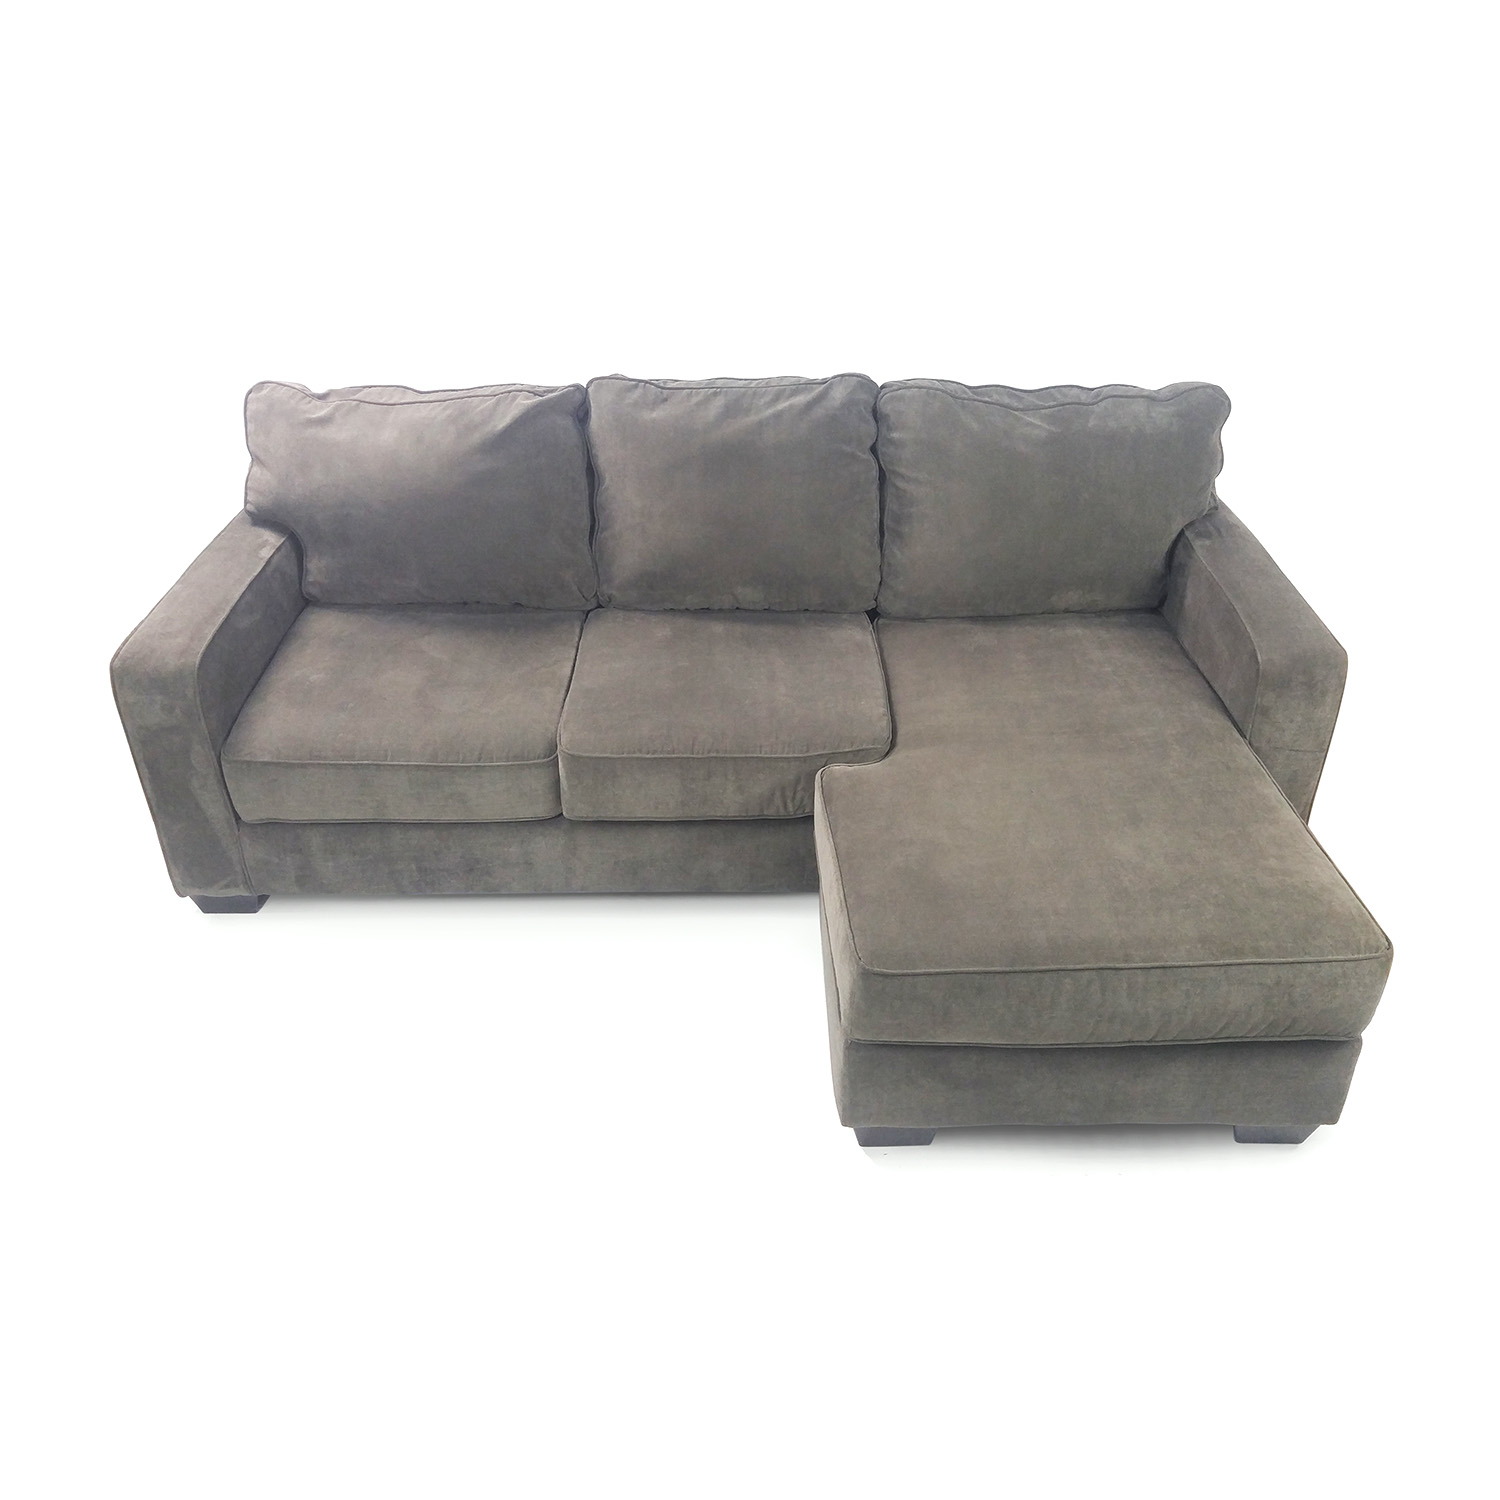 Hodan sofa chaise ashley furniture hodan marble sofa for Ashley chaise lounge recliner